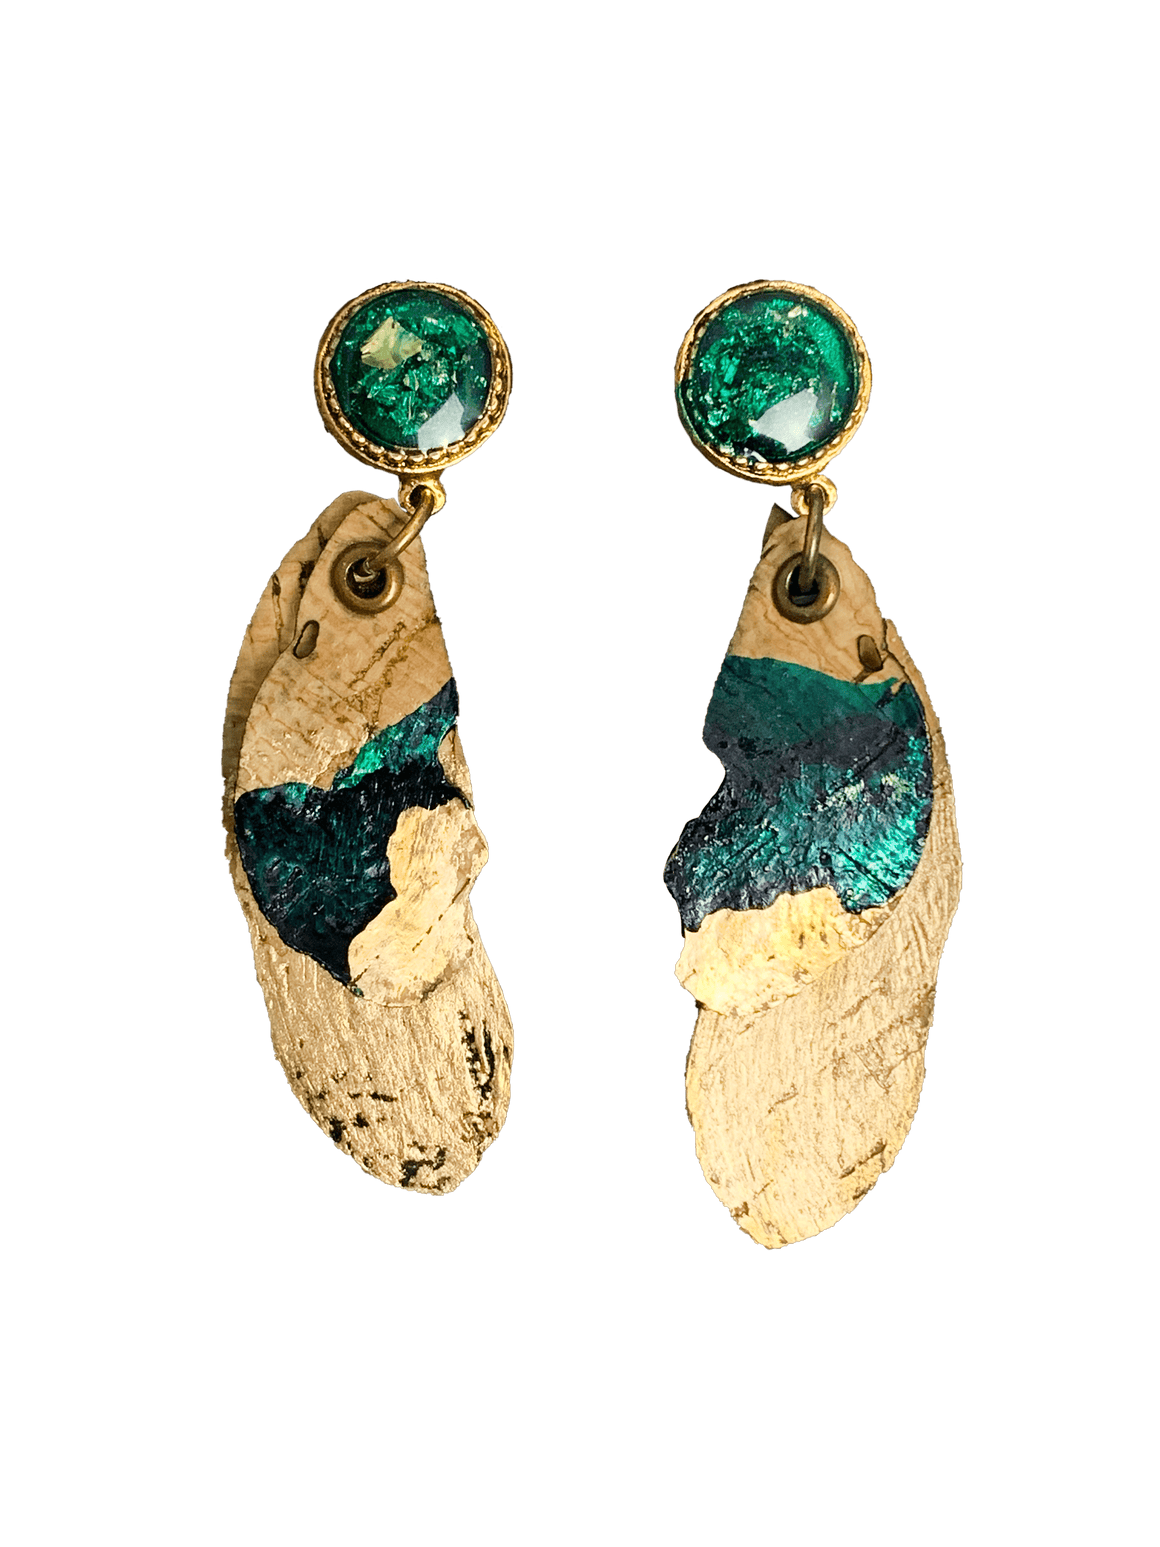 2 Cork Leaf Post Earrings with Resin - Naturally Anti-Microbial Hypoallergenic Sustainable Eco-Friendly Cork